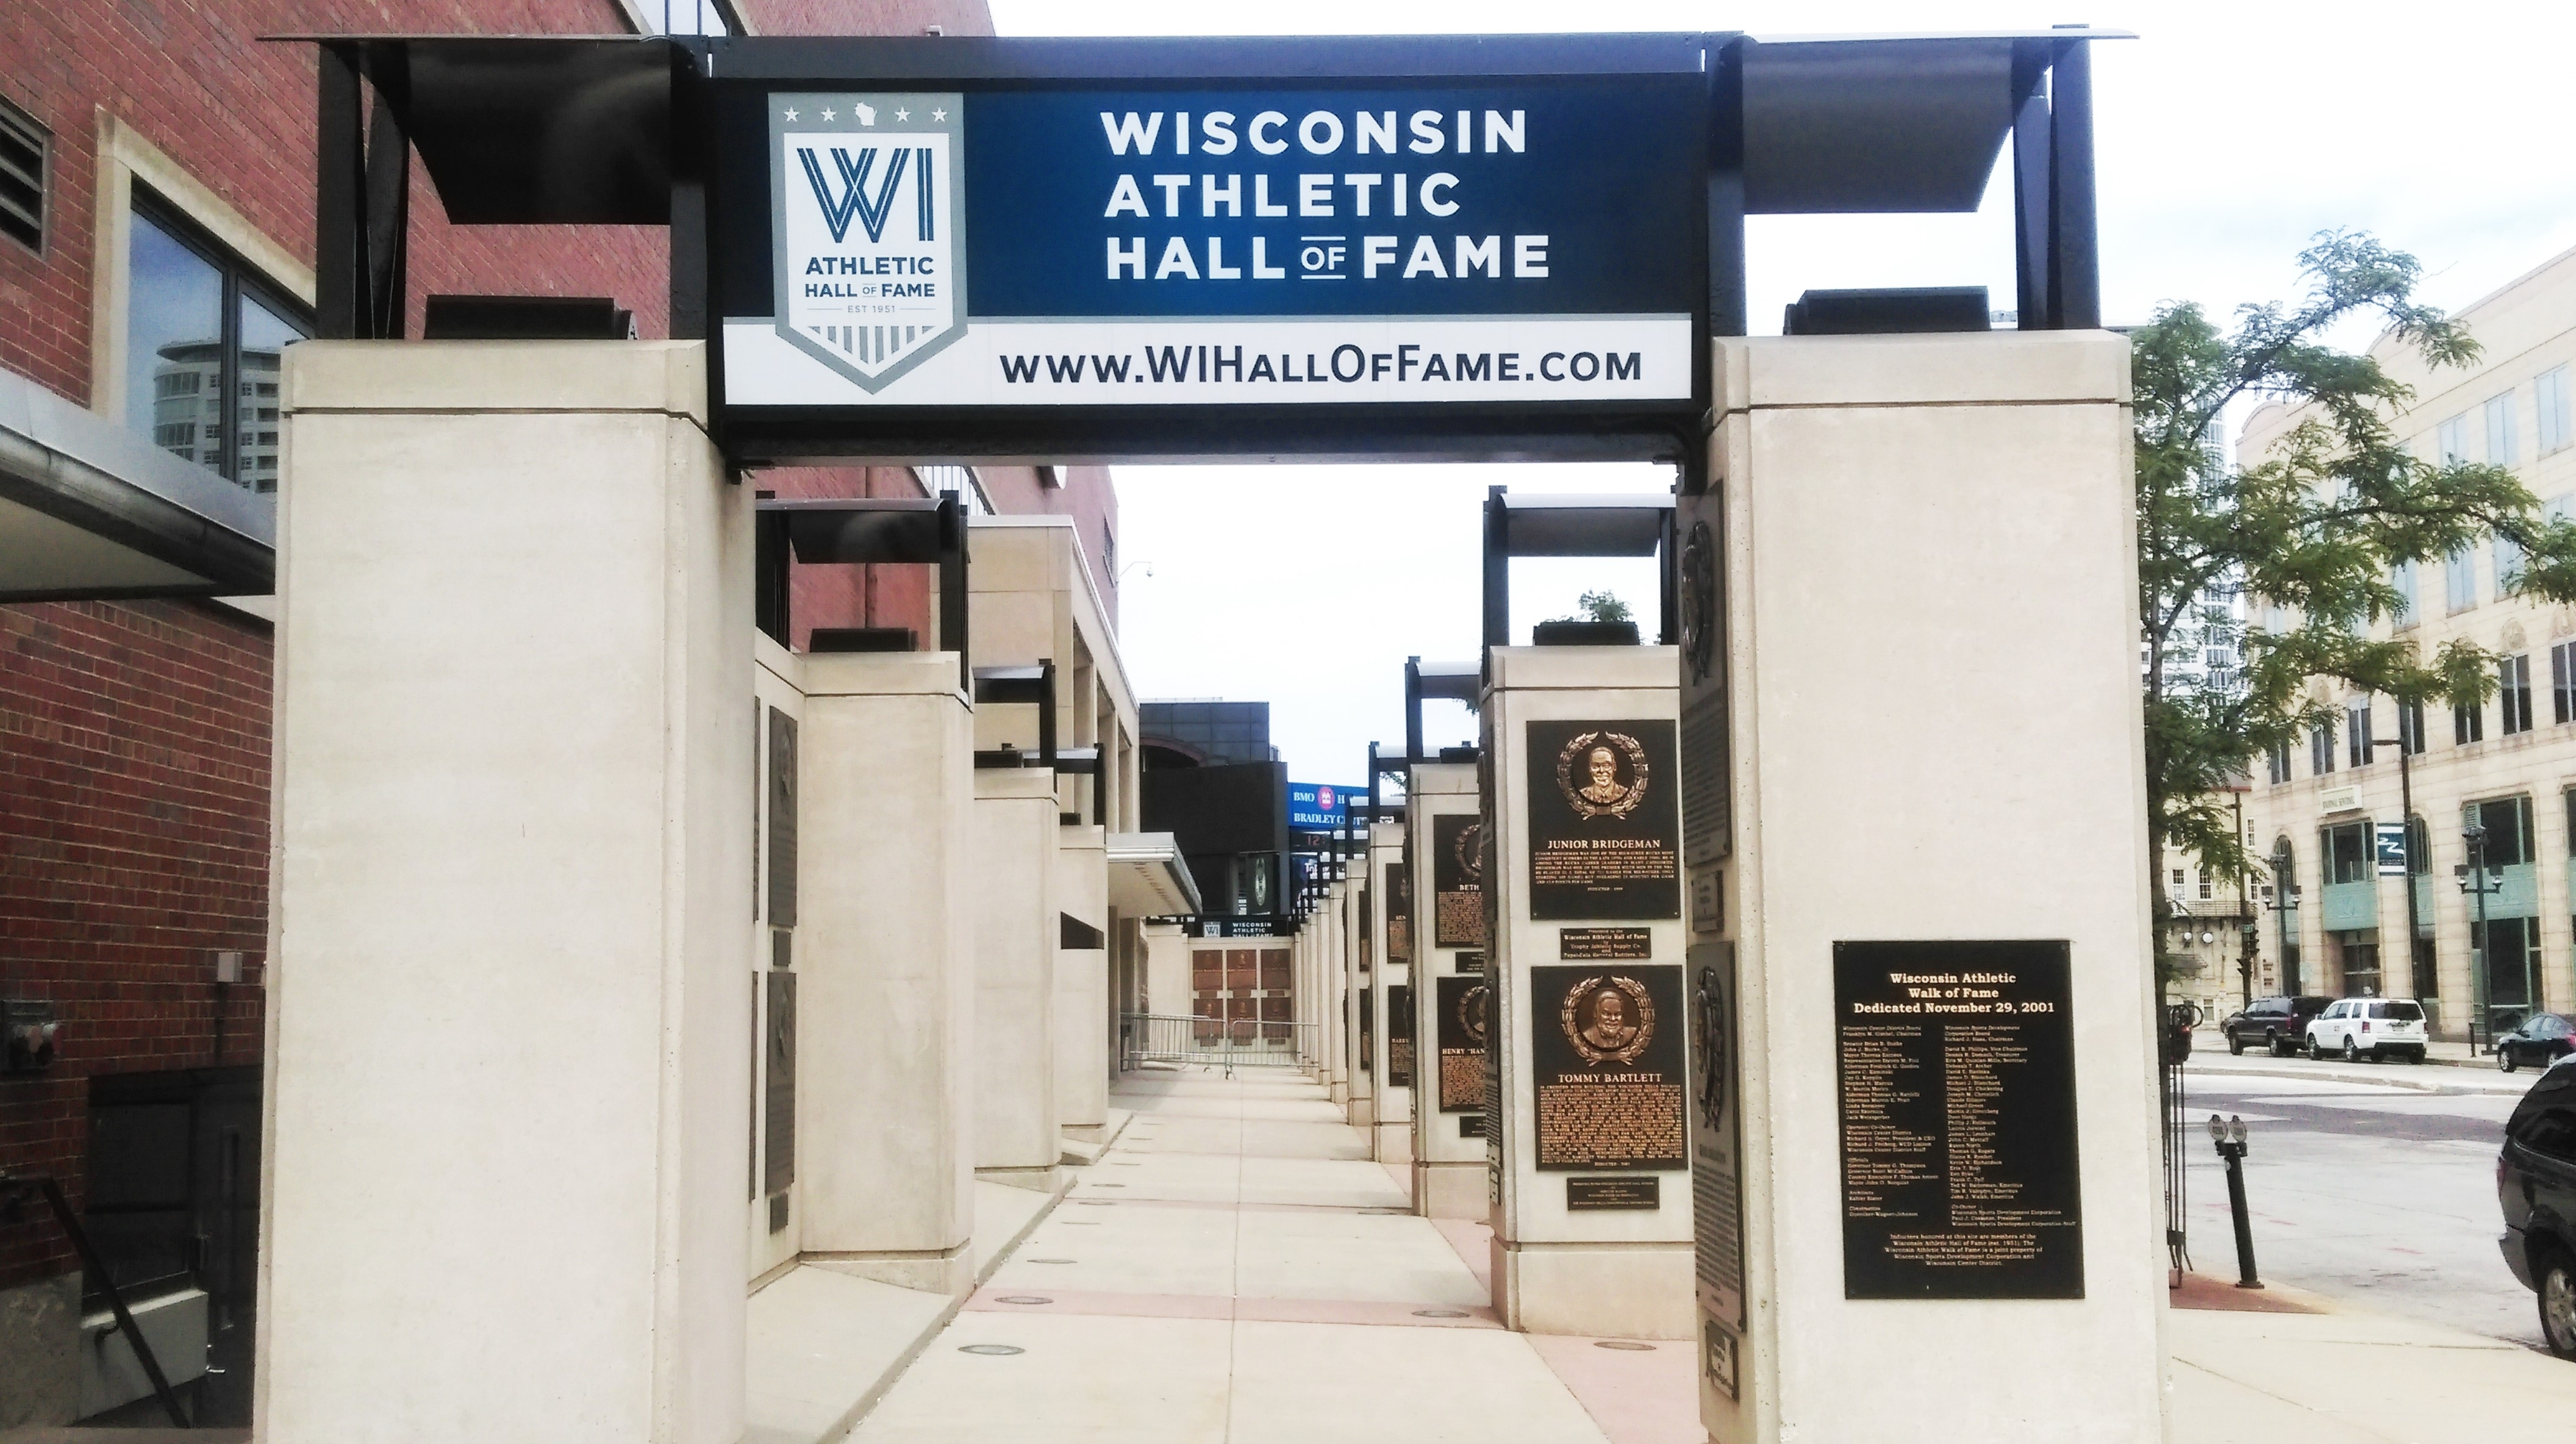 Wisconsin Athletic Hall of Fame